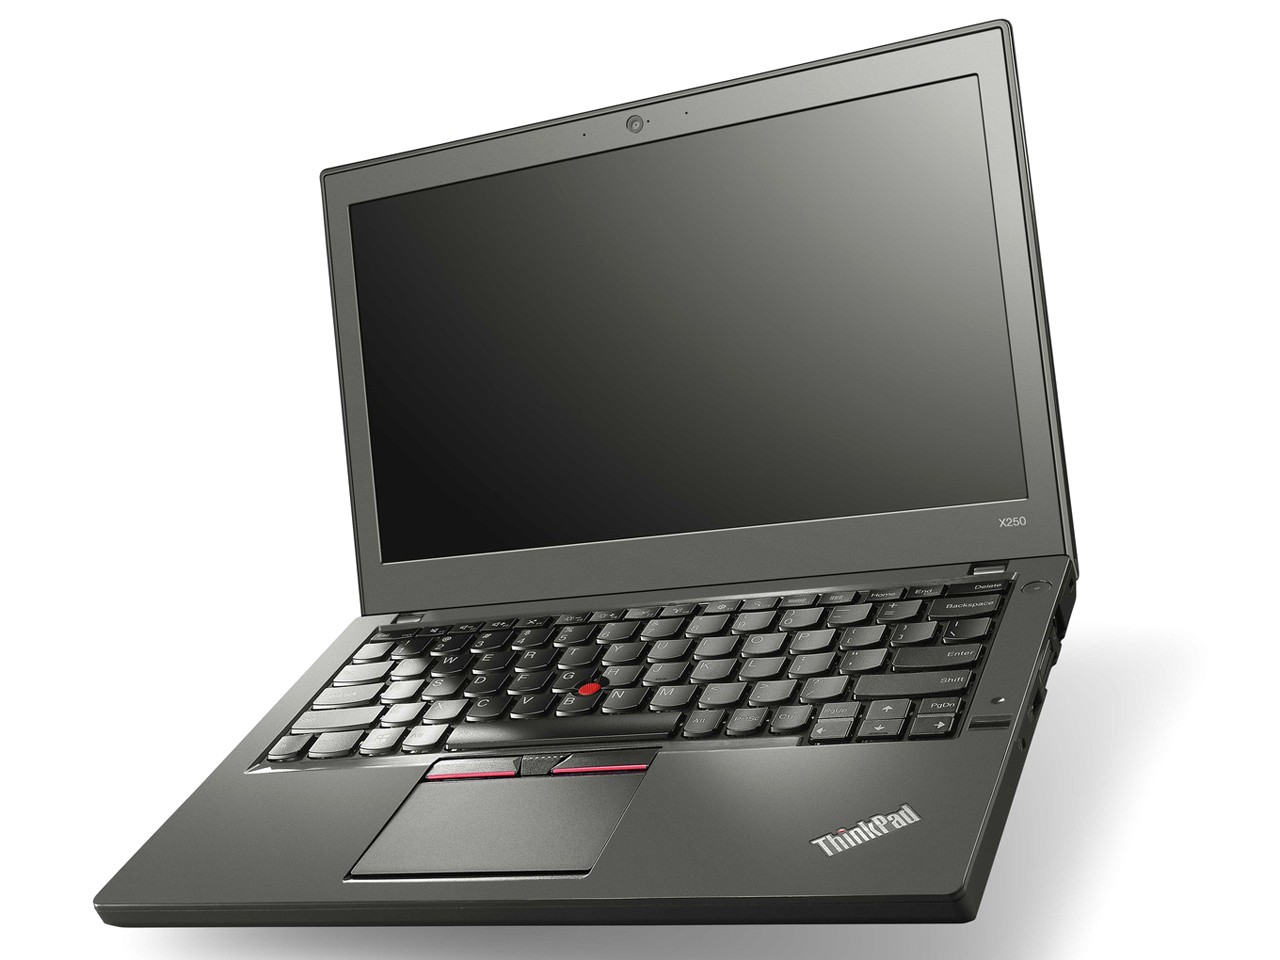 Lenovo ThinkPad X250 Ultrabook Review - NotebookCheck net Reviews